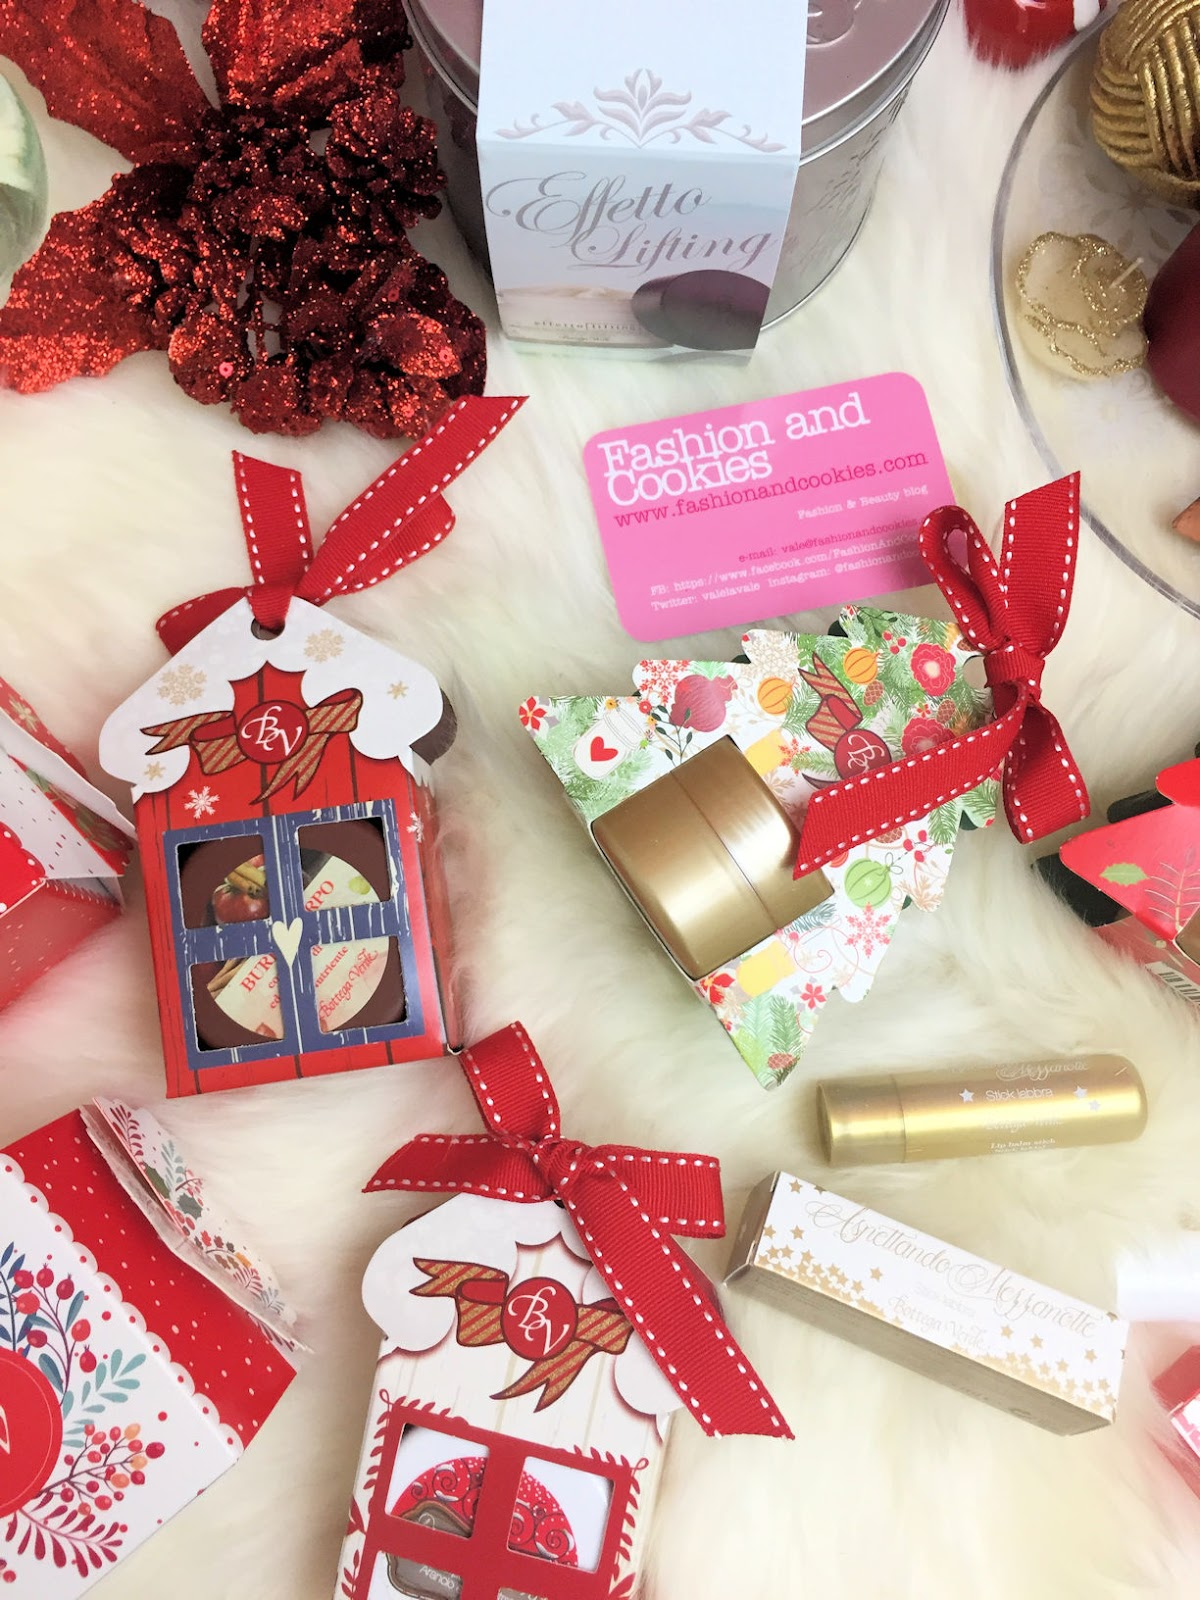 Aspettando Natale: idee regalo Bottega Verde su Fashion and Cookies beauty blog, beauty blogger